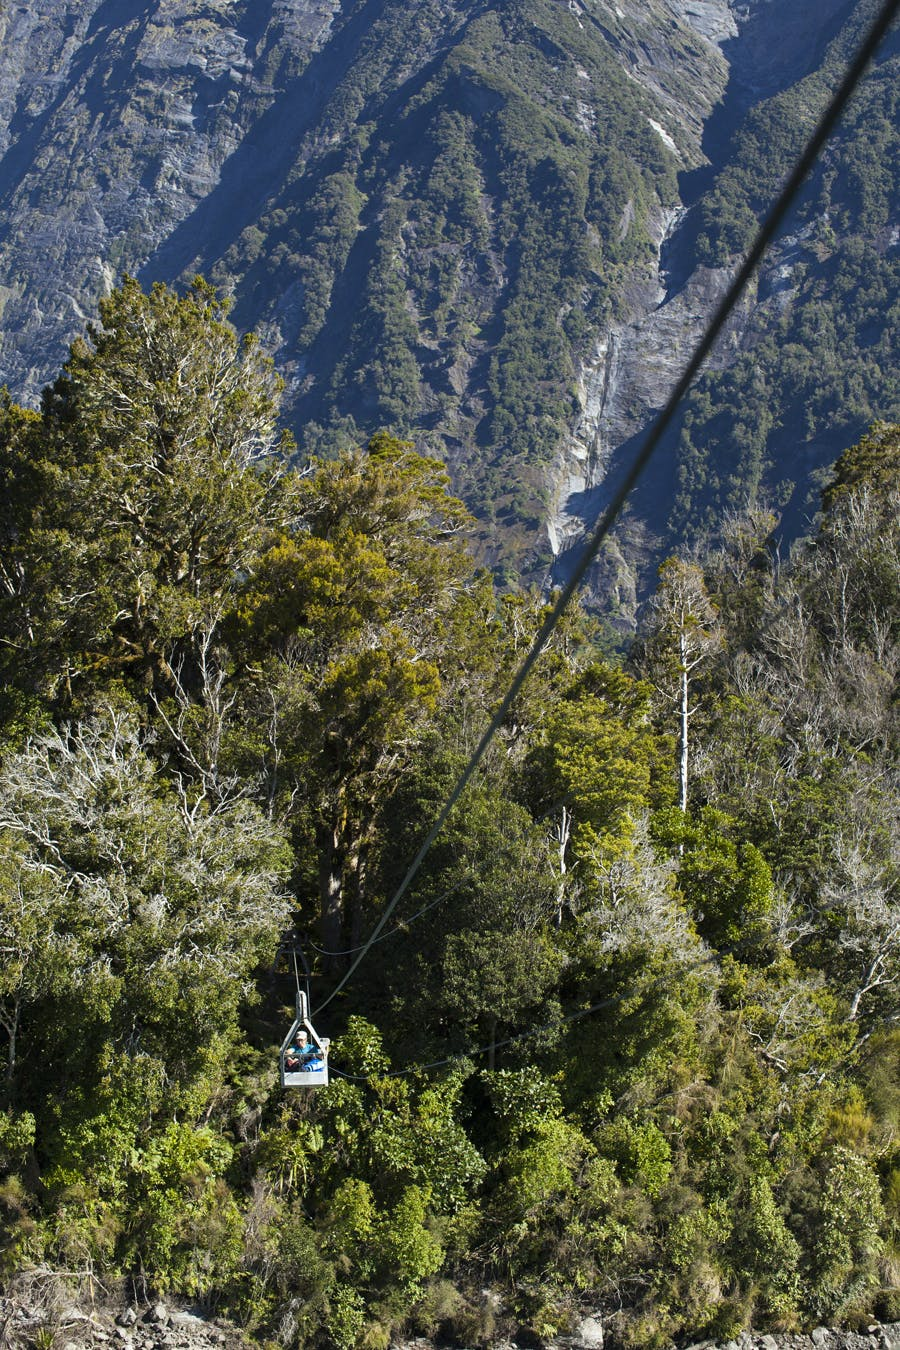 Hana Black crosses the cableway over the Karangarua River to access Regina Creek and the track to Conical Hill. Photo: Mark Watson